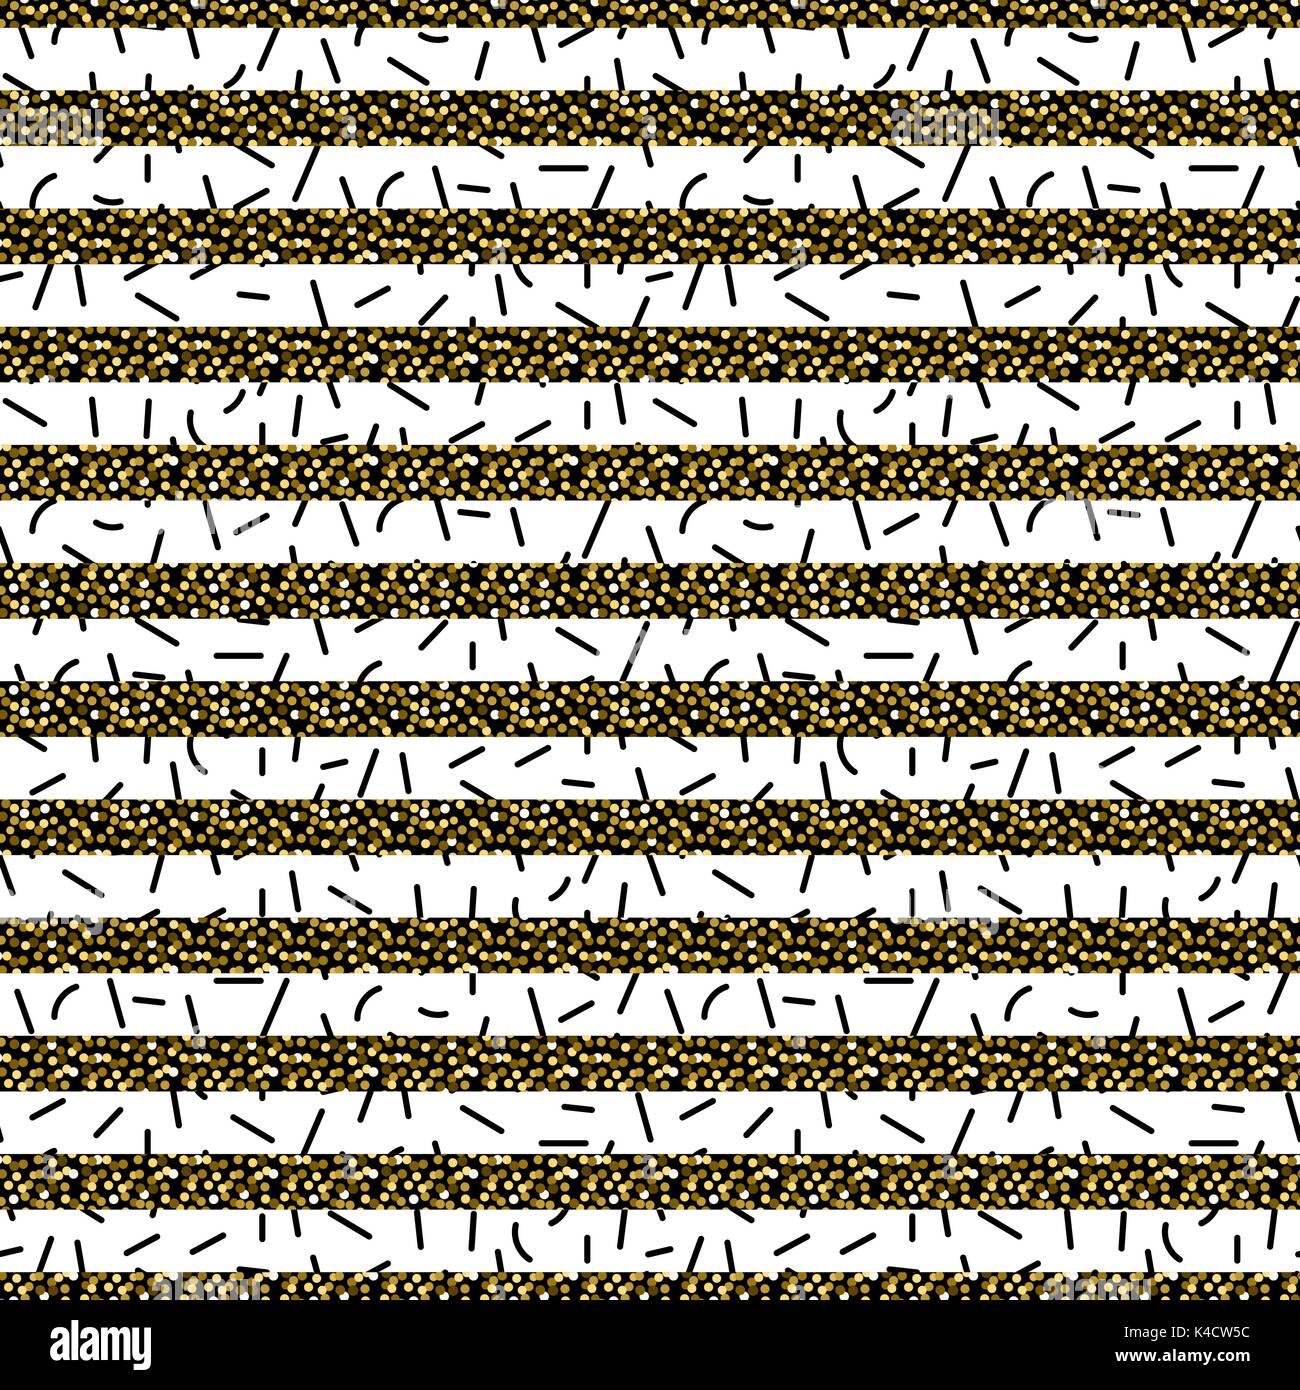 Glitter stripes and black thin particles seamless pattern. - Stock Image